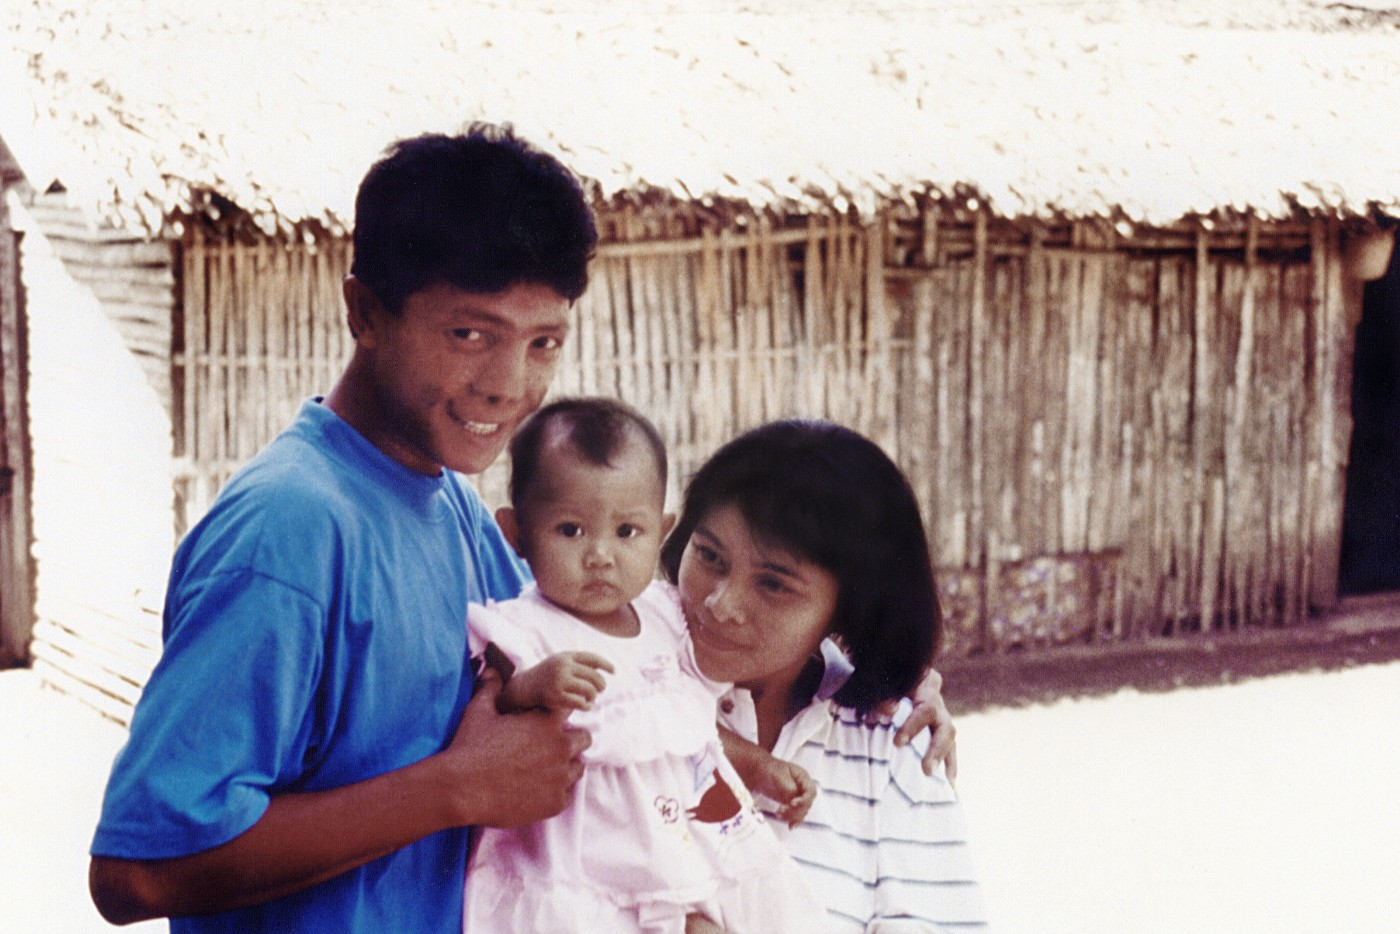 Antero poses with his child and wife after surgery outside of a building.